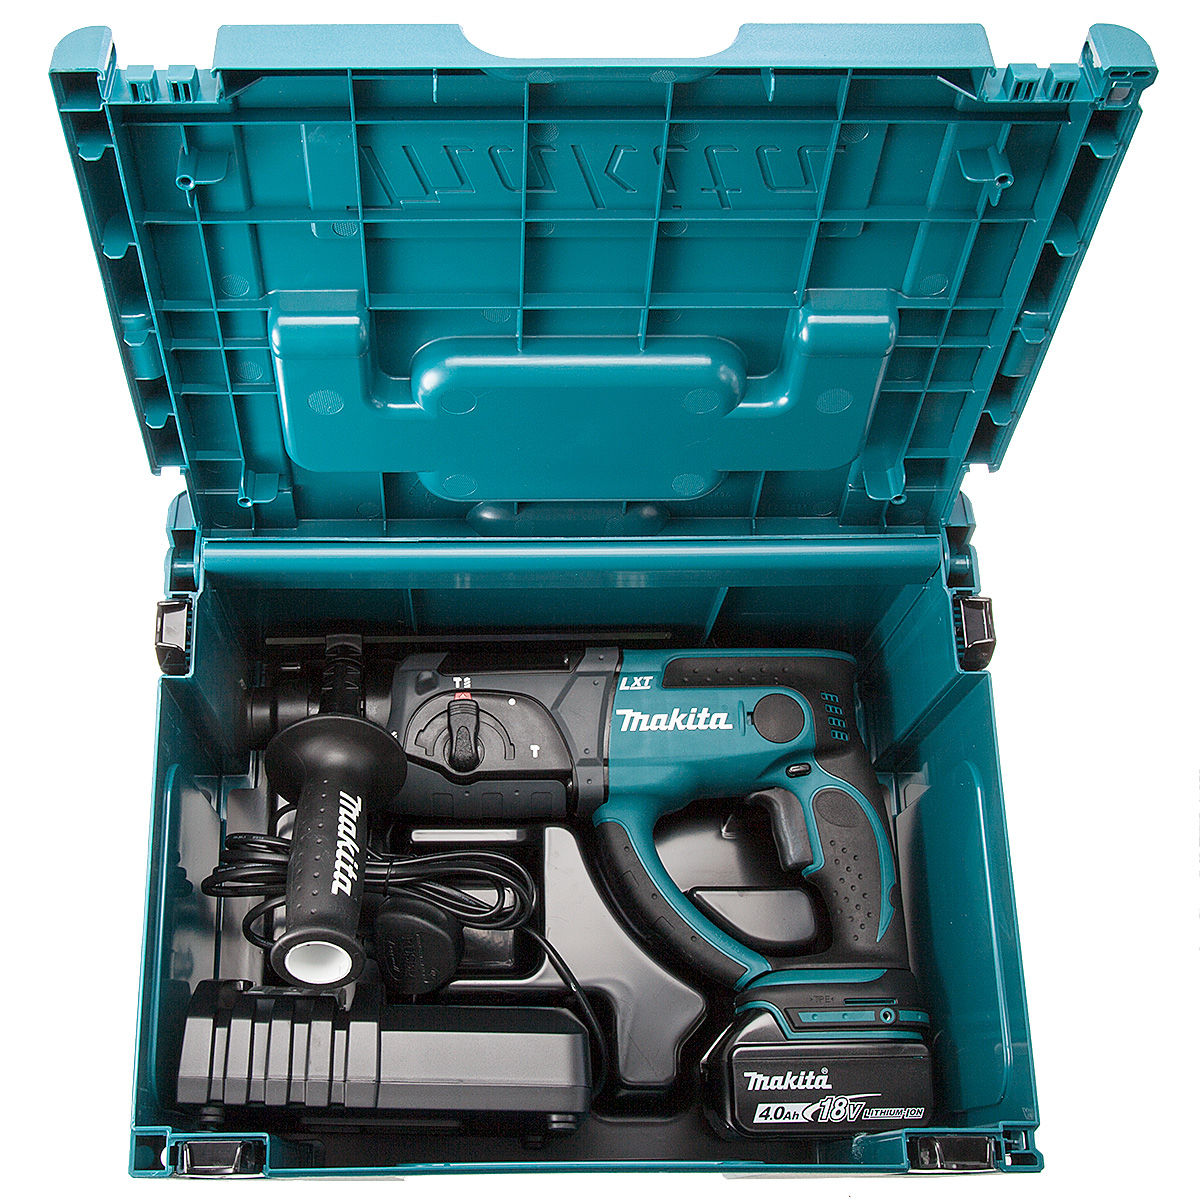 toolstop makita dhr202rm1j 18v cordless li ion sds rotary. Black Bedroom Furniture Sets. Home Design Ideas